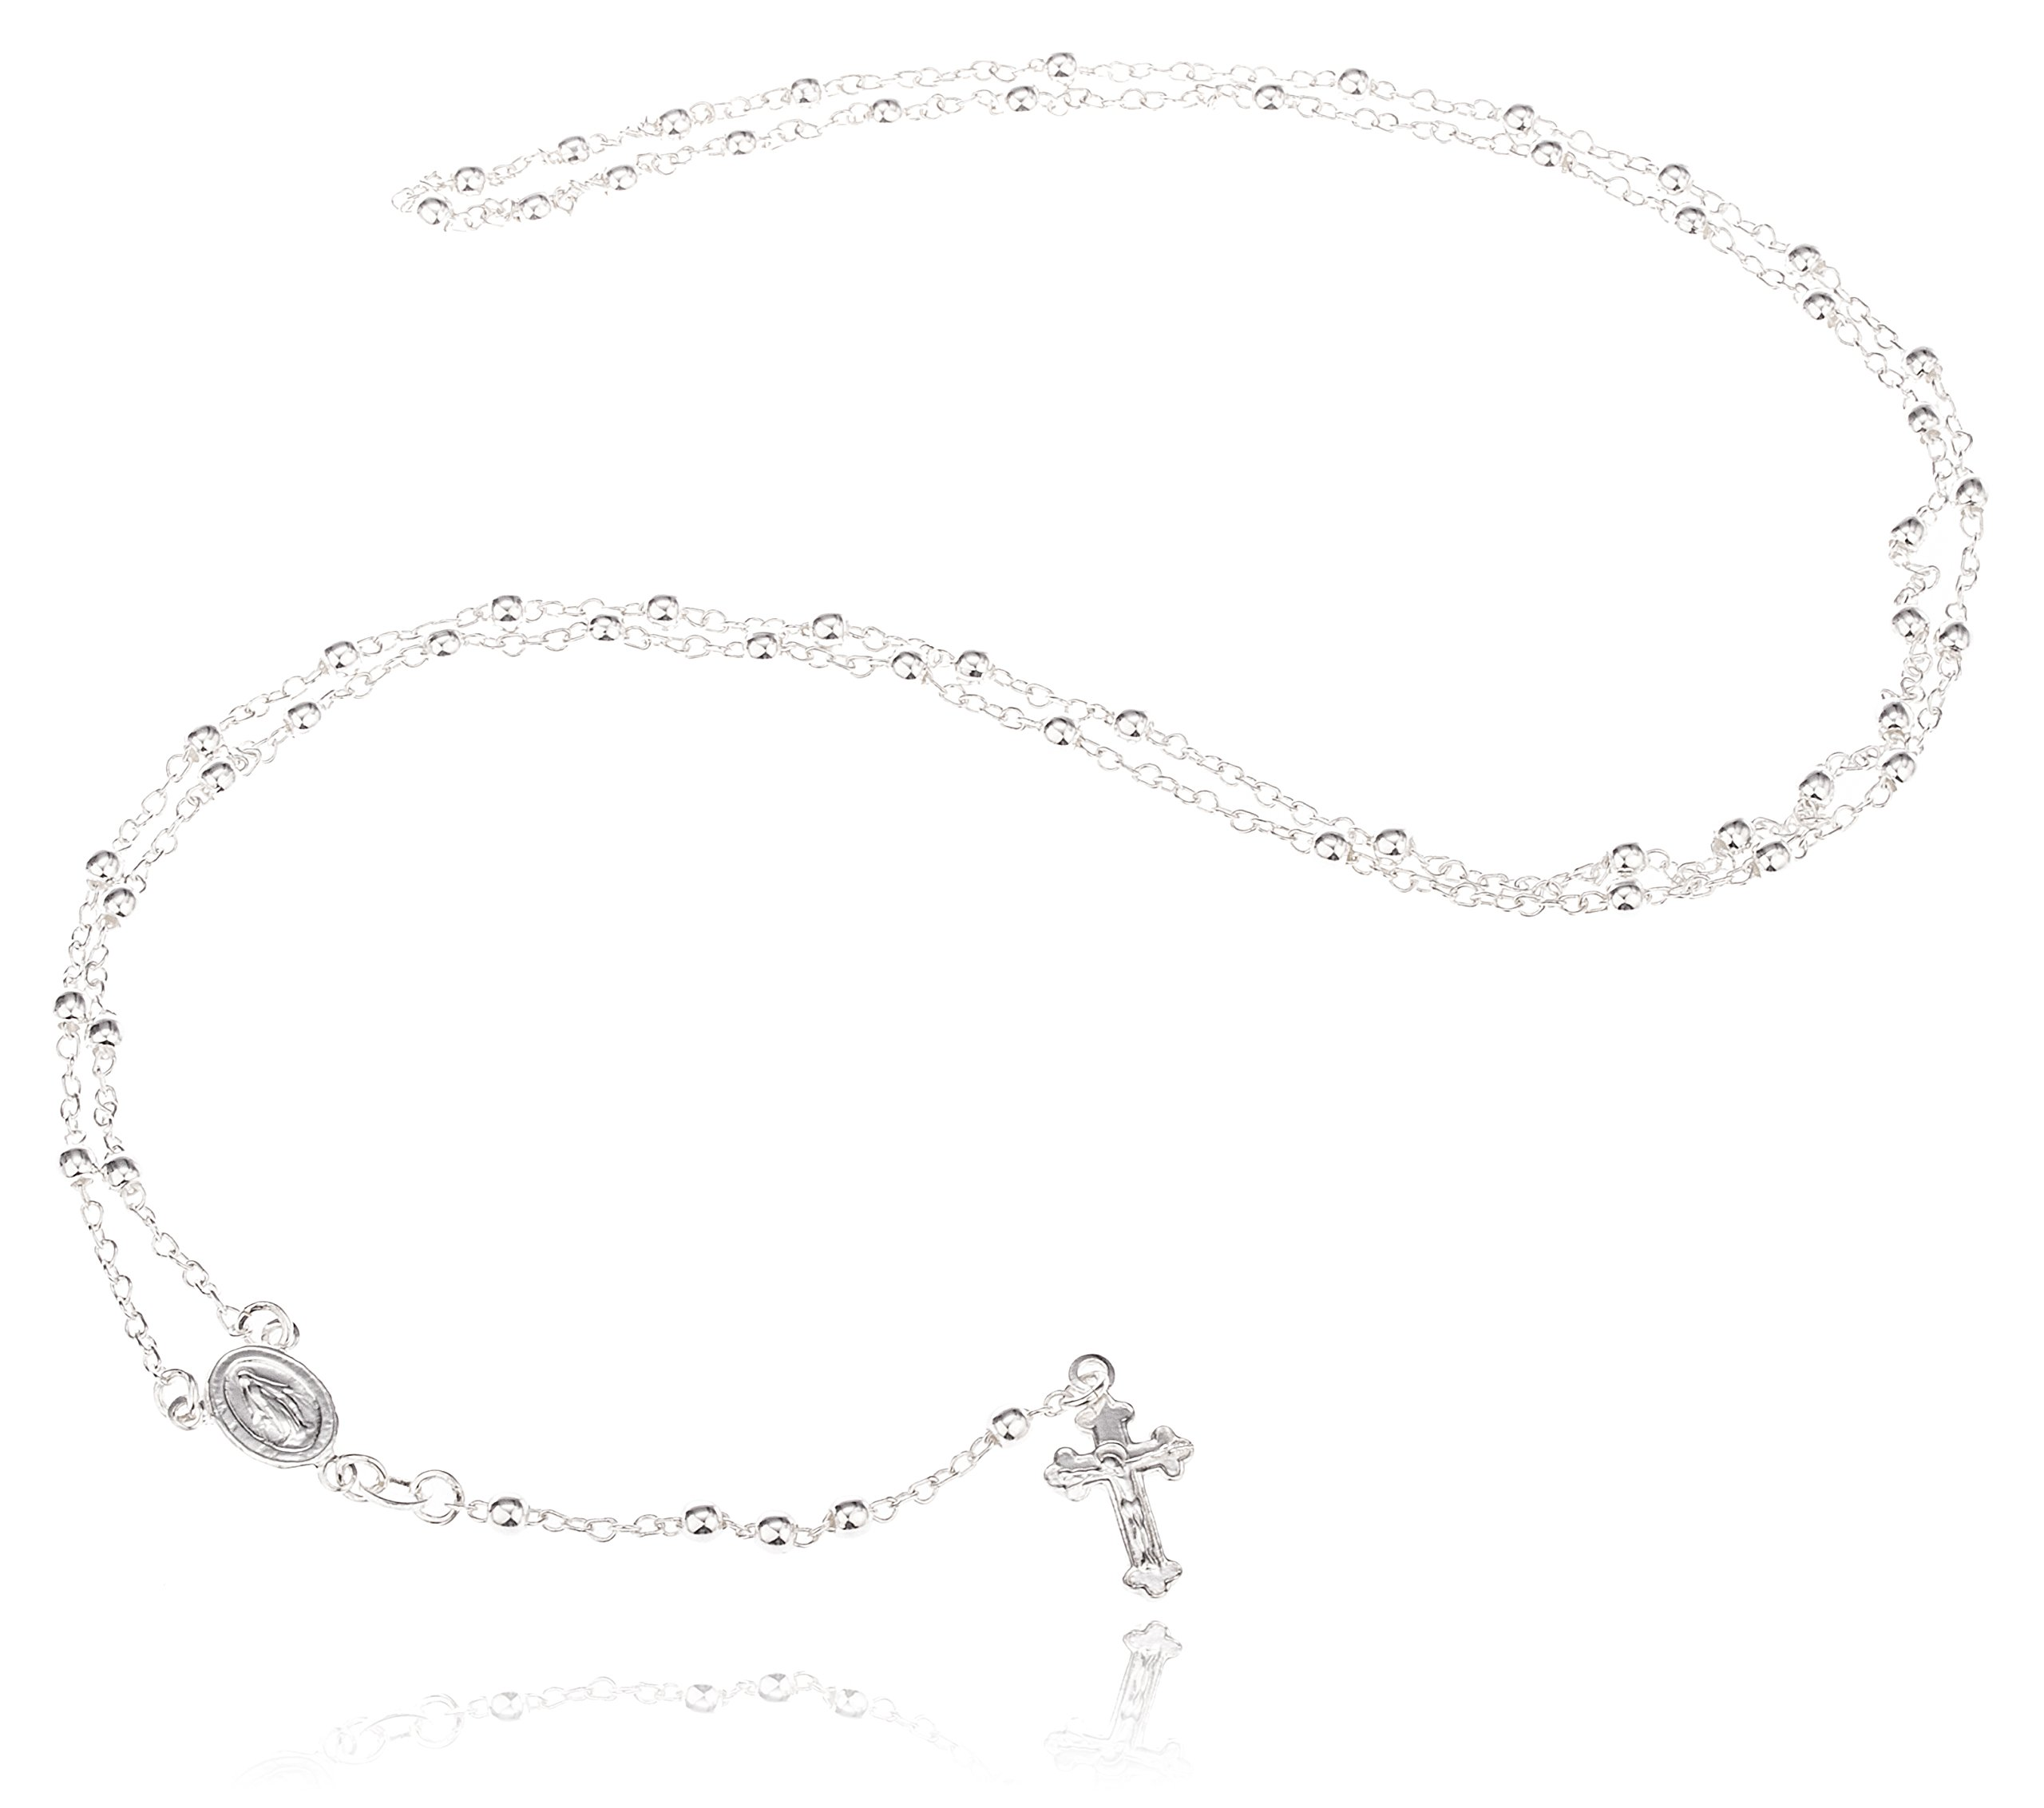 925 Sterling Silver 3mm 24 Inch Beaded Rosary Necklace with Dangling Cross (I-1520)